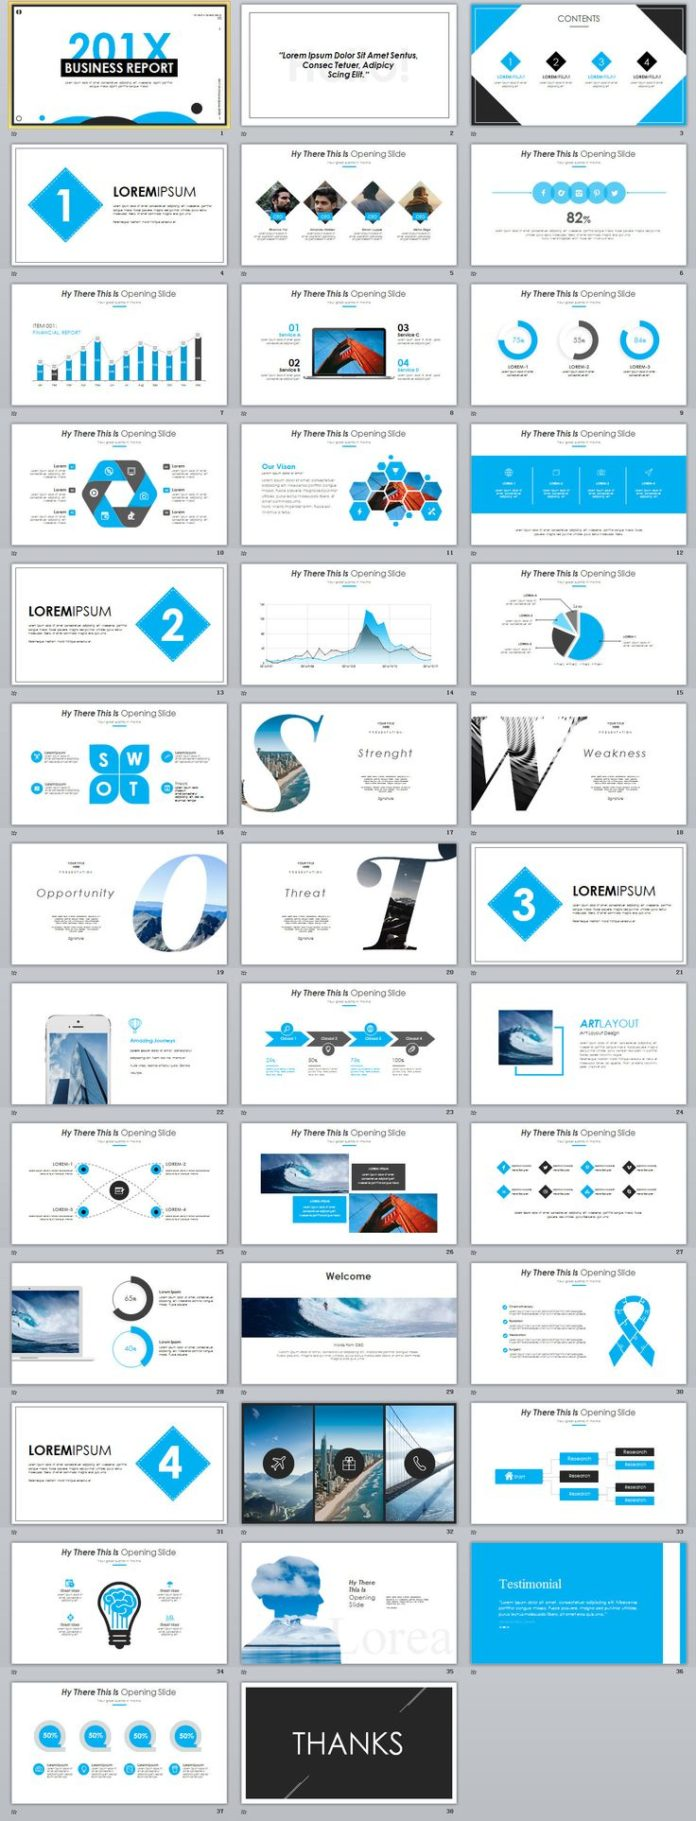 38 Best Nn1 Images On Pinterest: Business Infographic : 38+ Best Blue Business Annual